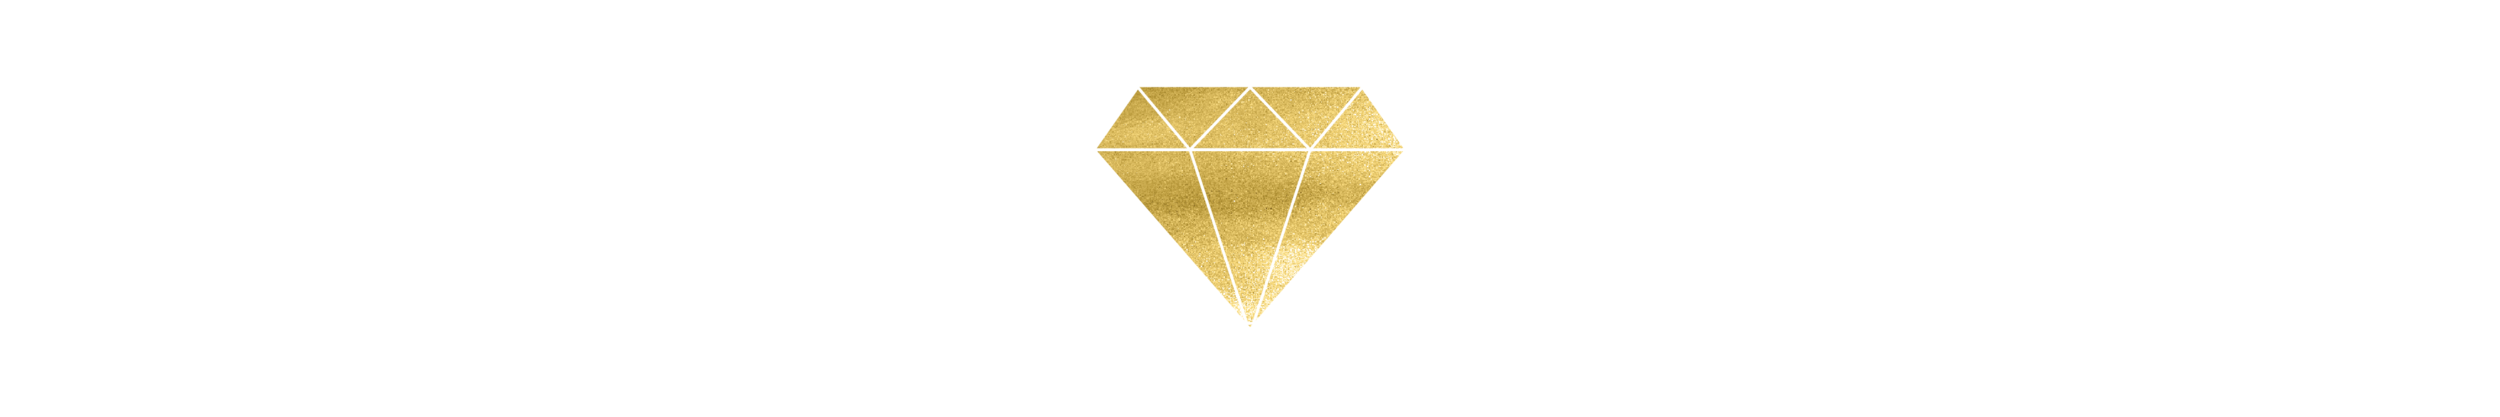 Diamond copy-01.png